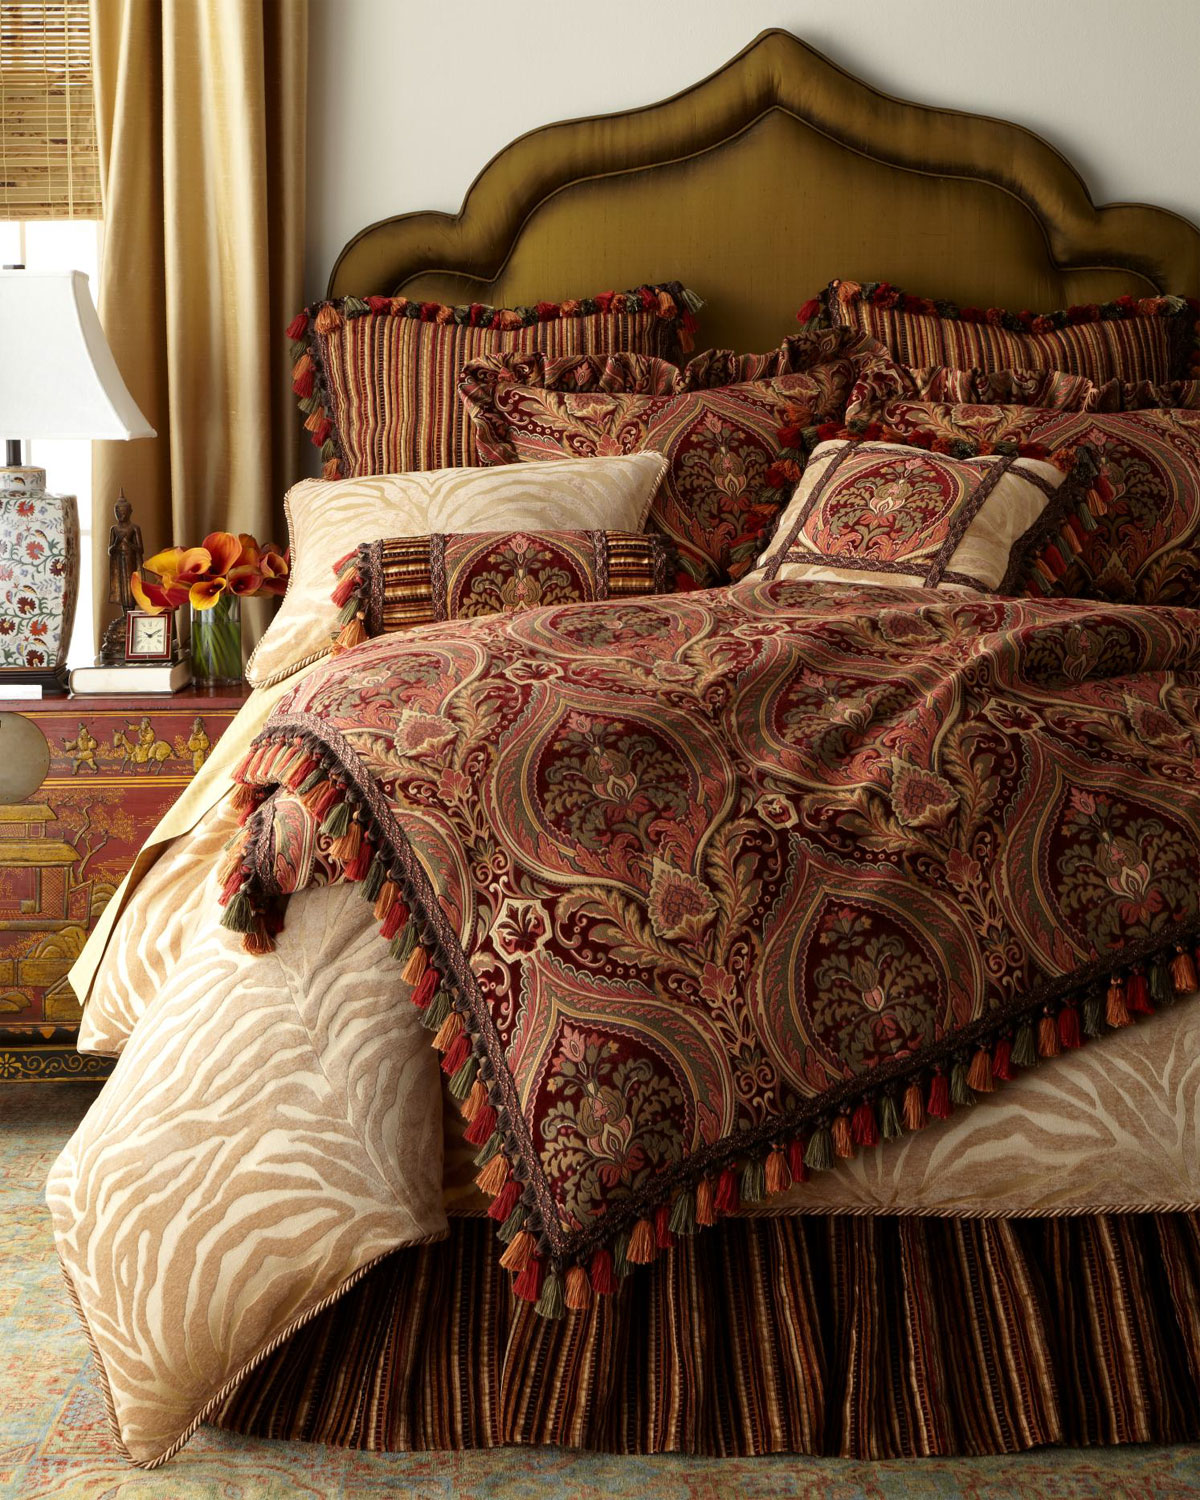 Persia By Isabella Luxury Linens Beddingsuperstore Com